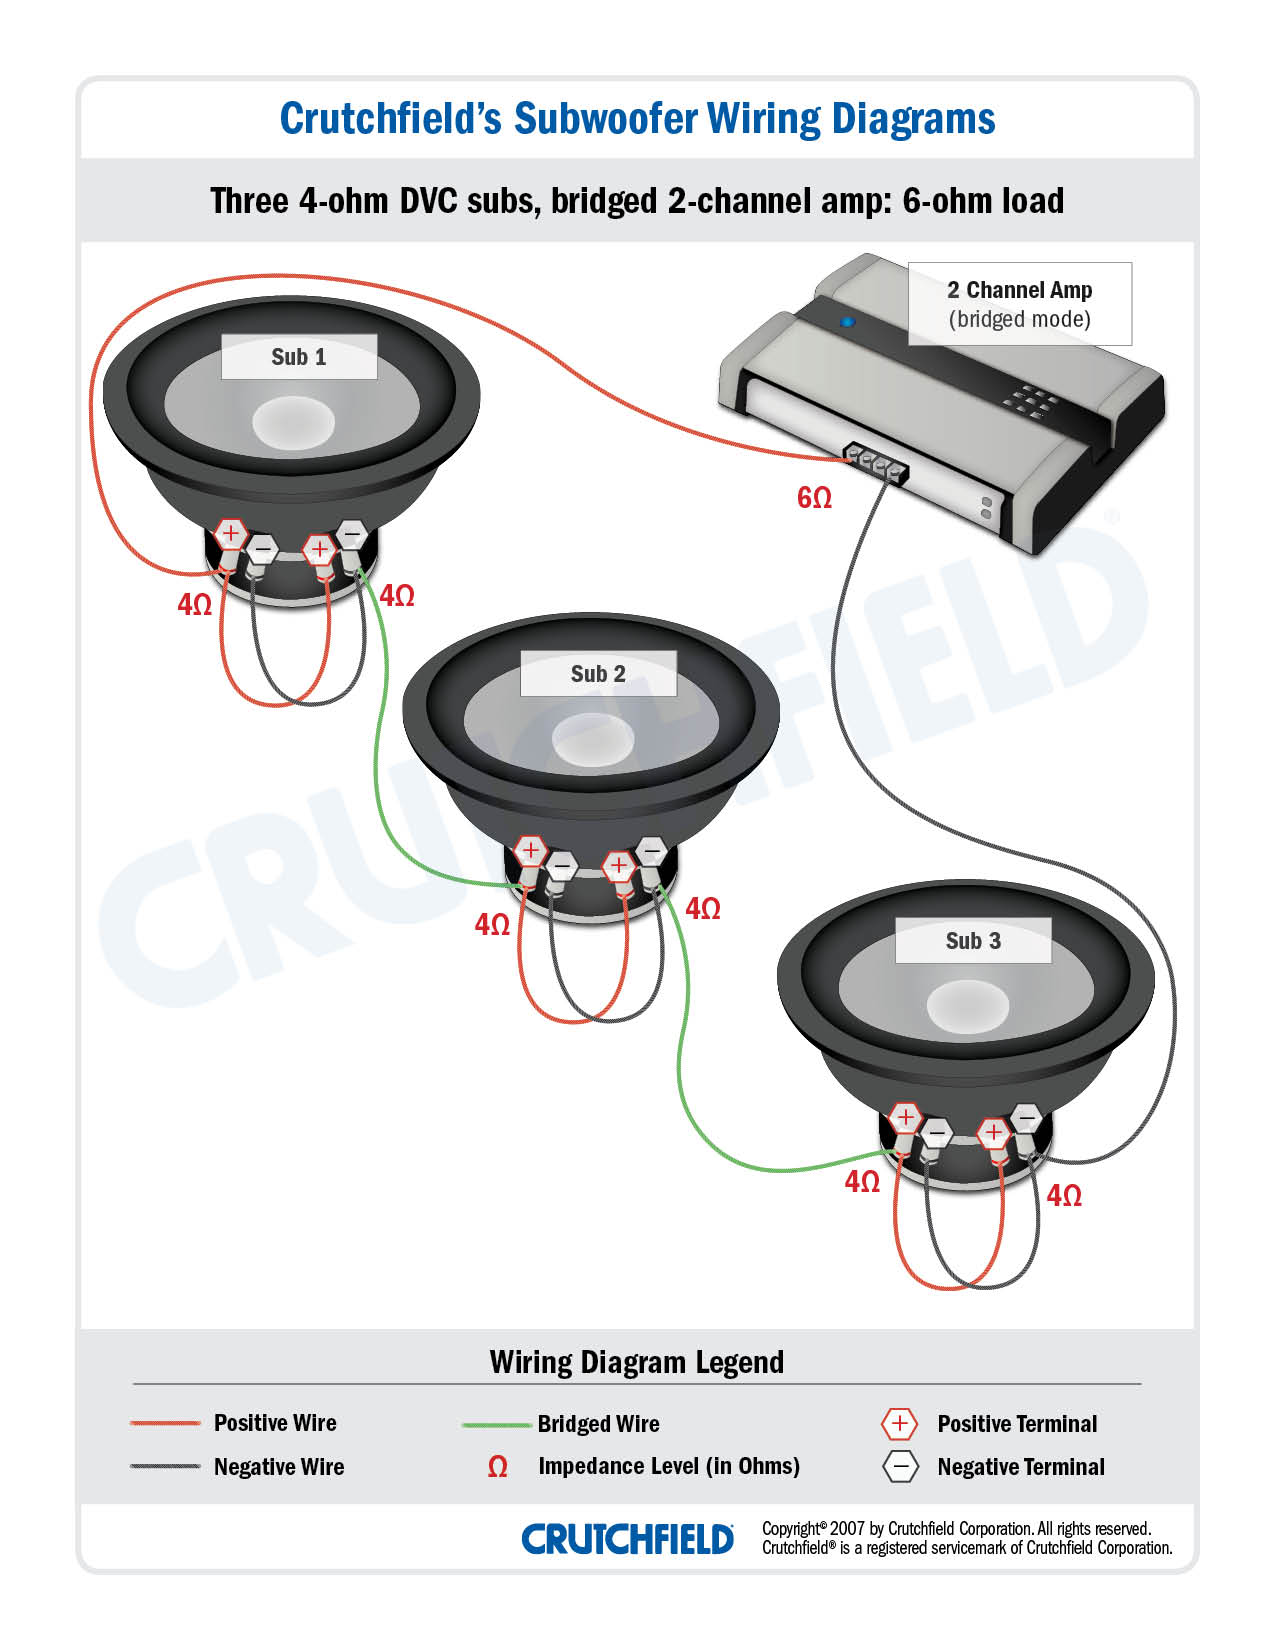 subwoofer wiring diagrams how to wire your subs rh crutchfield com DVC Sub Wiring -Diagram Single 4 Ohm Sub Wiring